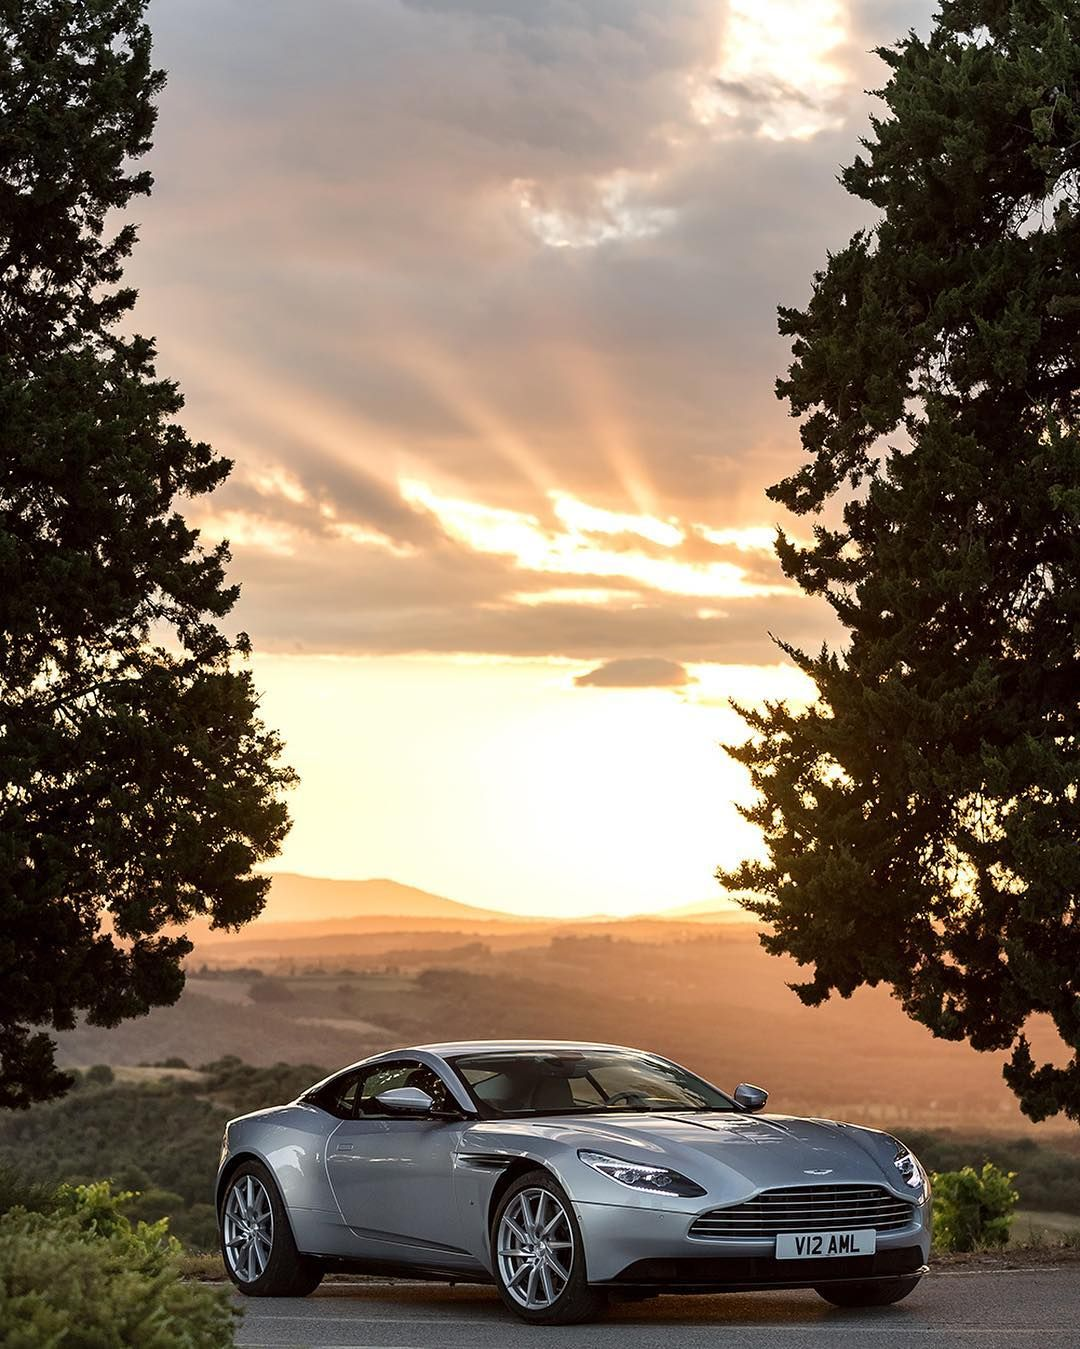 Perfection = A Beautiful Sunset And The DB11 #astonmartin